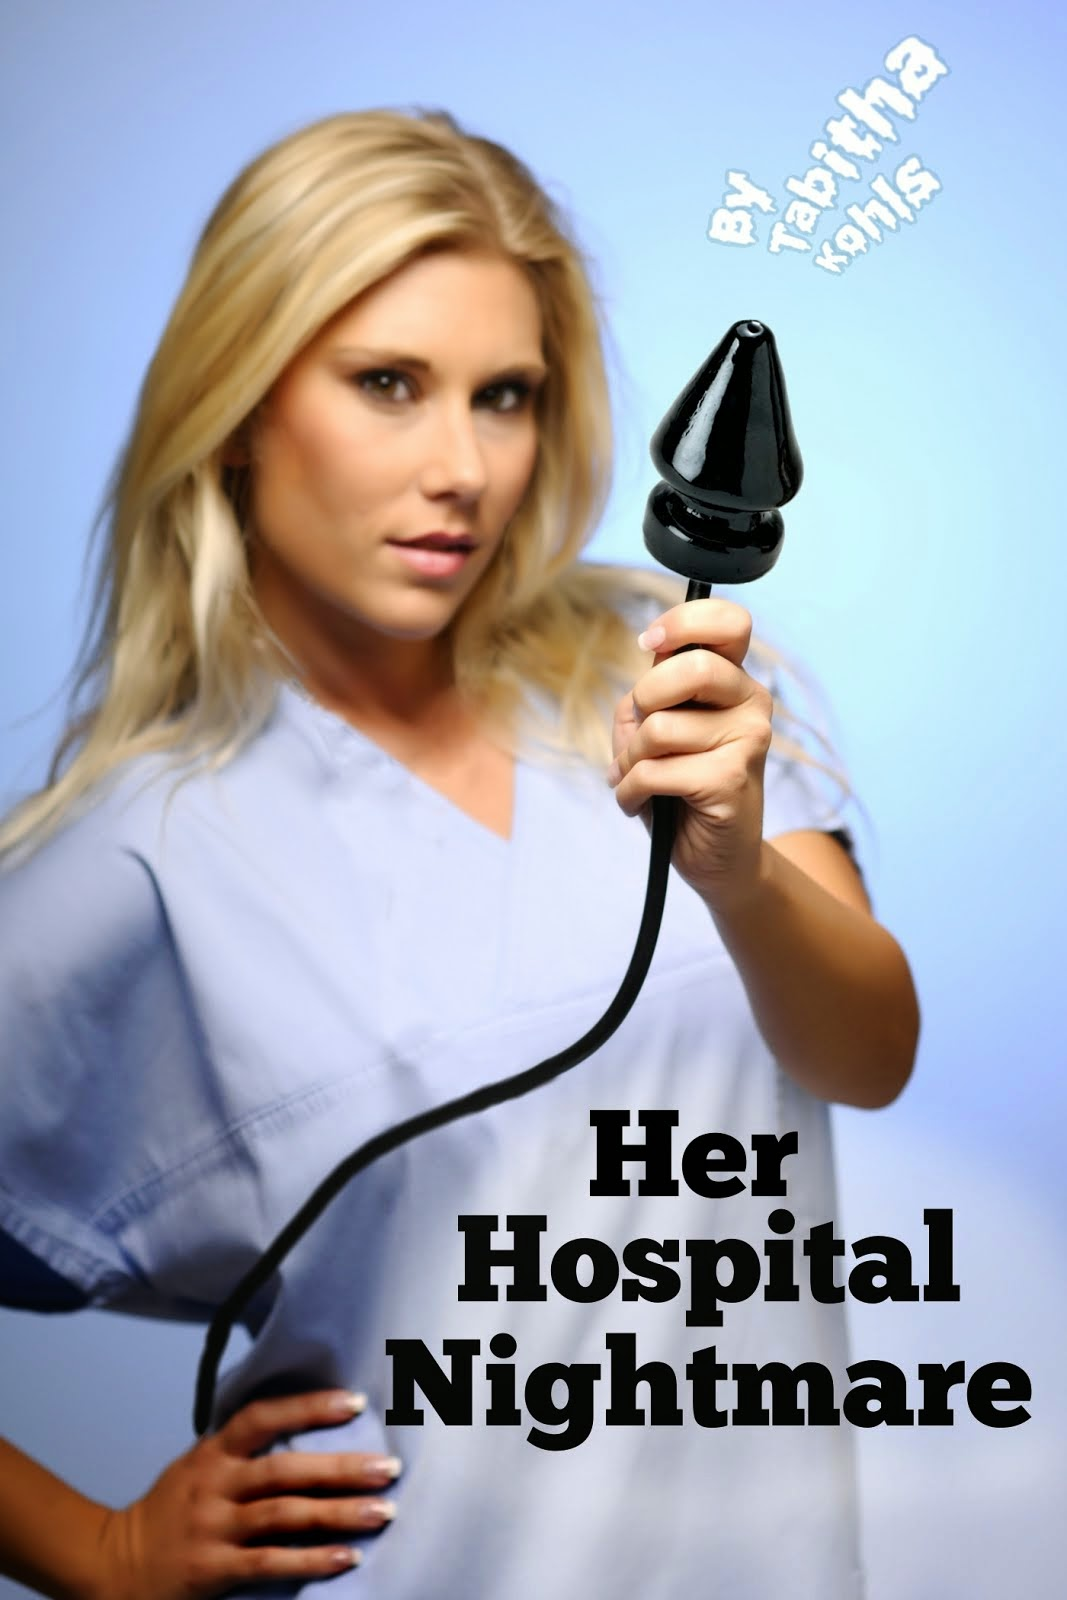 Her Hospital Nightmare